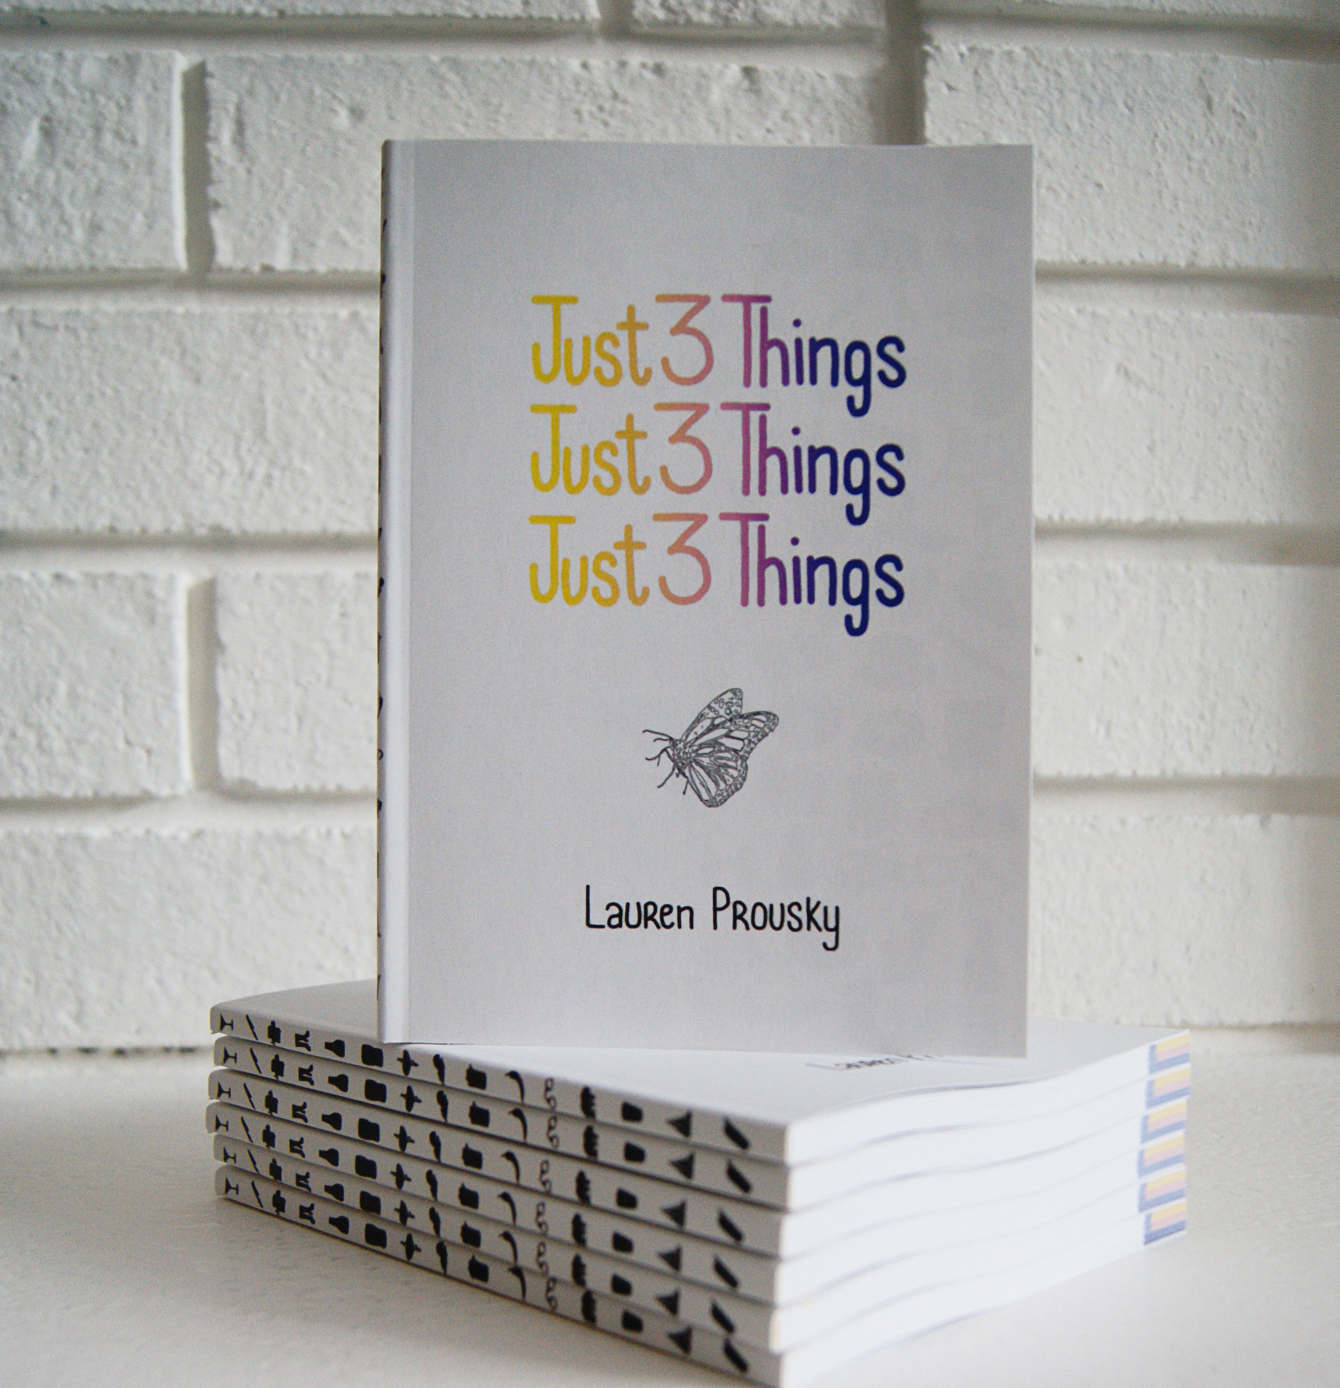 Just 3 Things by Lauren Prousky